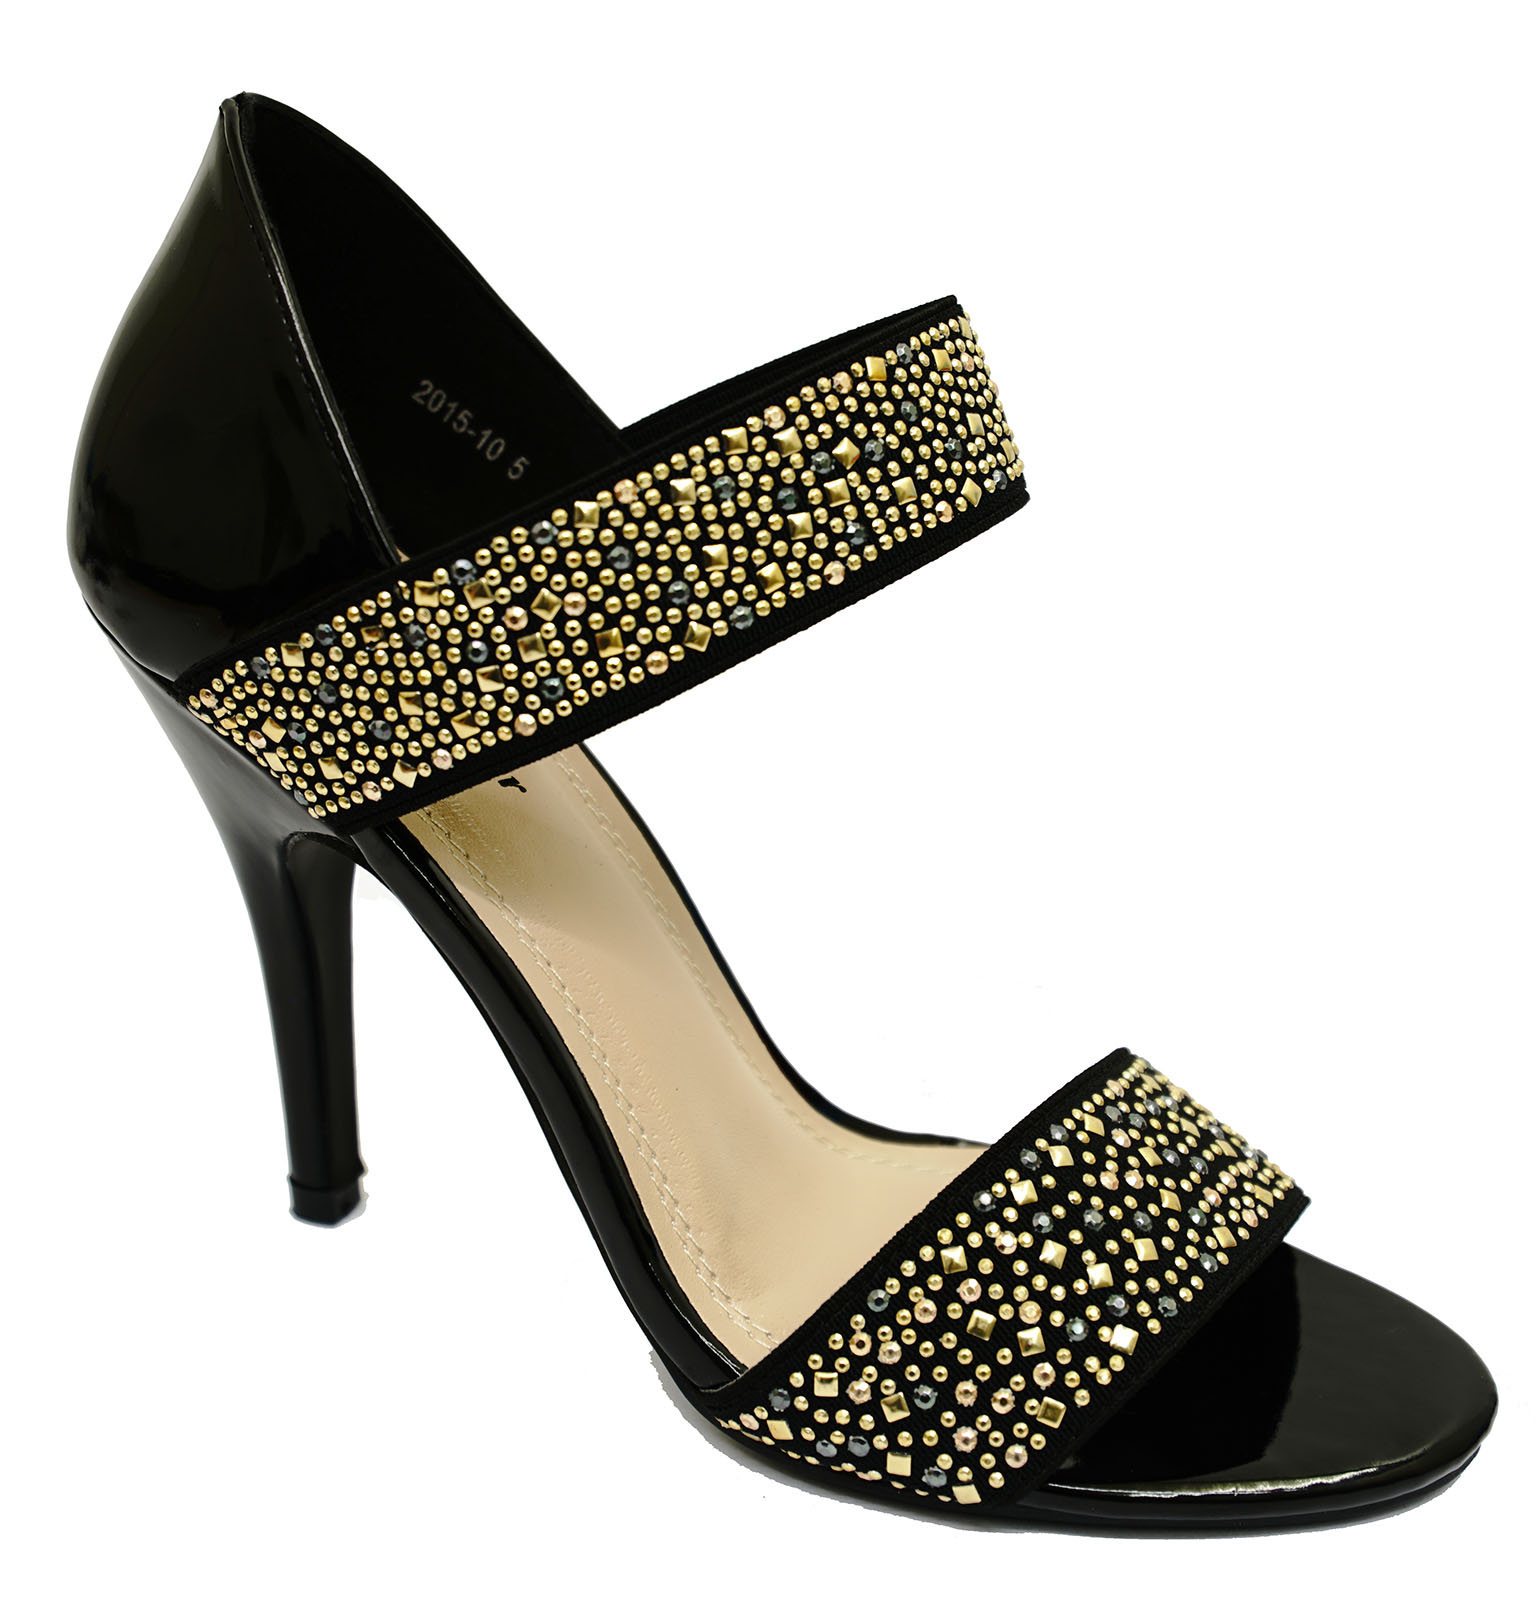 fea497833cb271 Details about WOMENS BLACK GOLD STILETTO SLIP-ON ELEGANT SANDALS EVENING  PROM SHOES SIZES 3-8